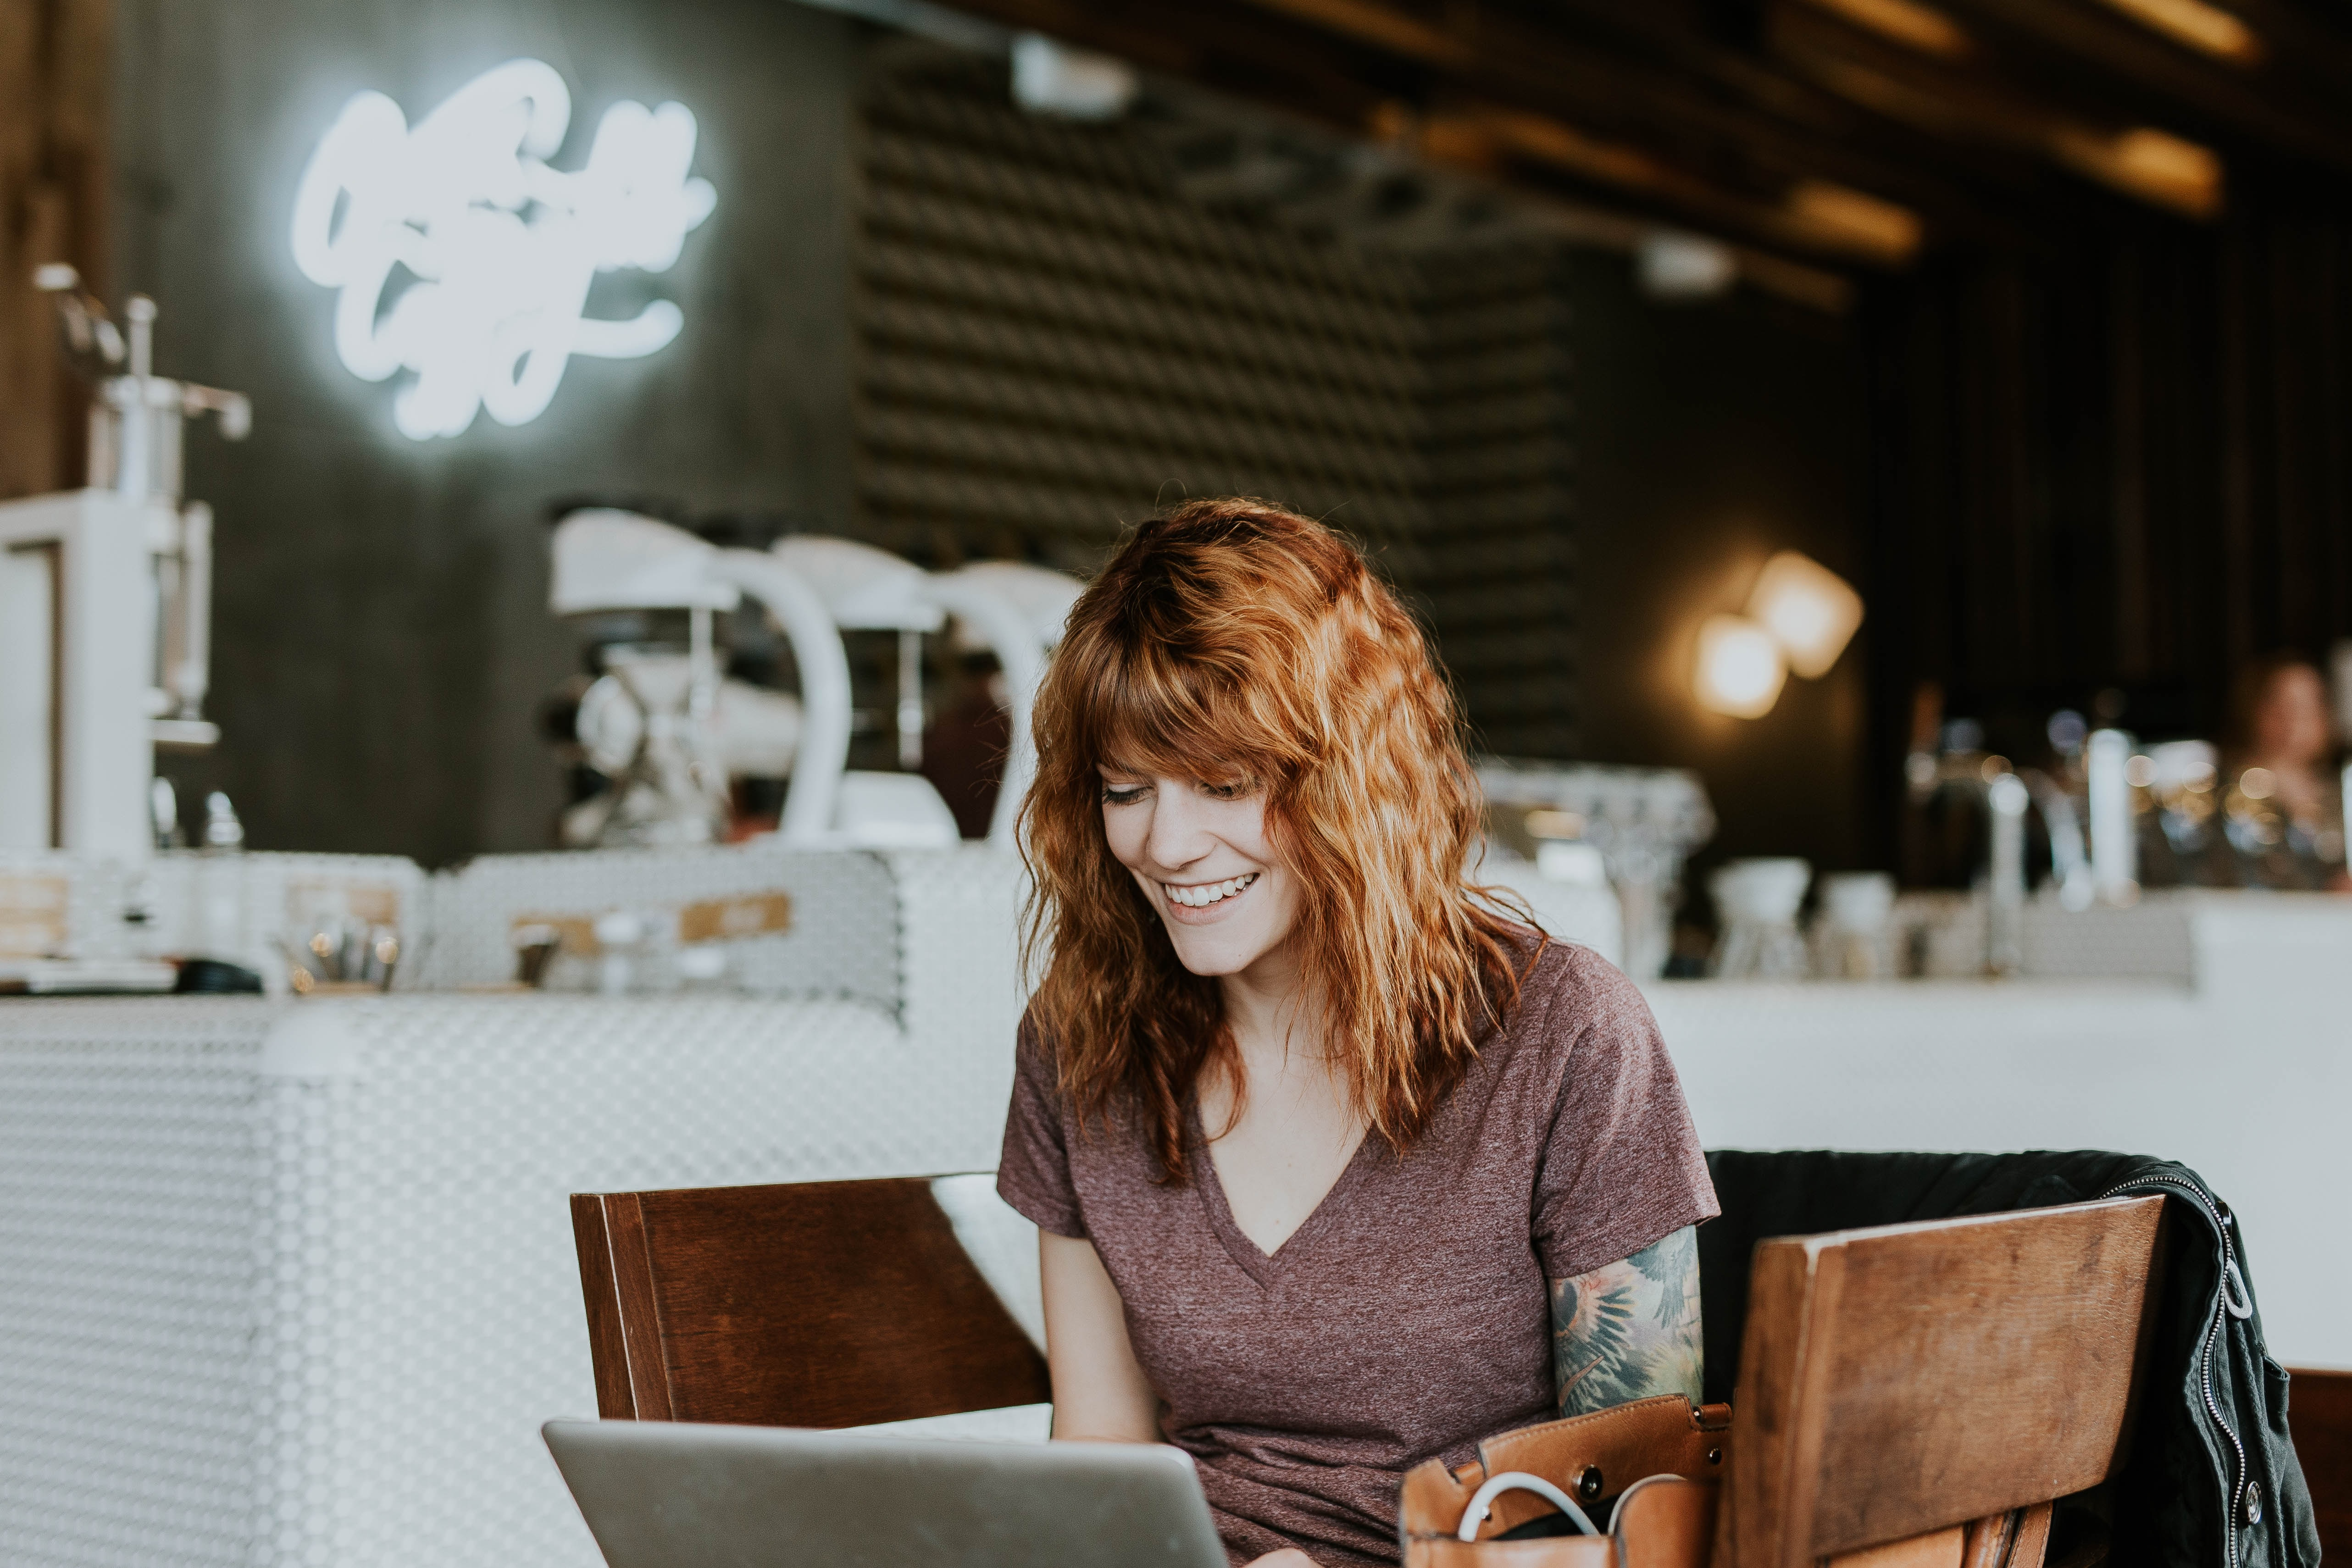 smiling woman looks at laptop